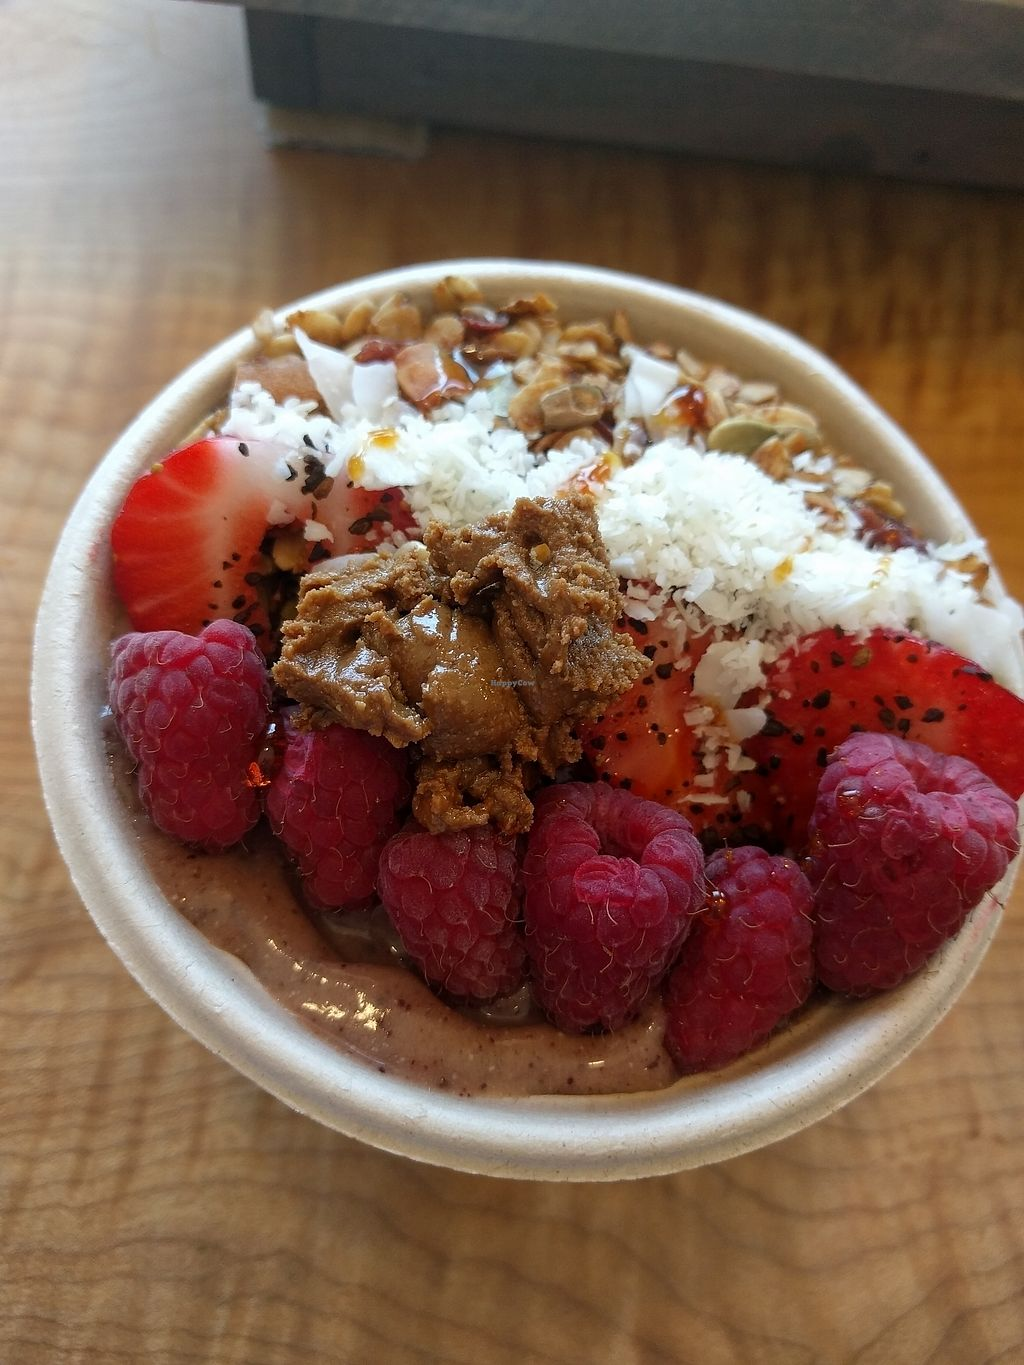 "Photo of CLOSED: The Hunter's Wife Health Bar  by <a href=""/members/profile/plantpig"">plantpig</a> <br/>Dessert acai bowl <br/> July 24, 2017  - <a href='/contact/abuse/image/74000/284502'>Report</a>"